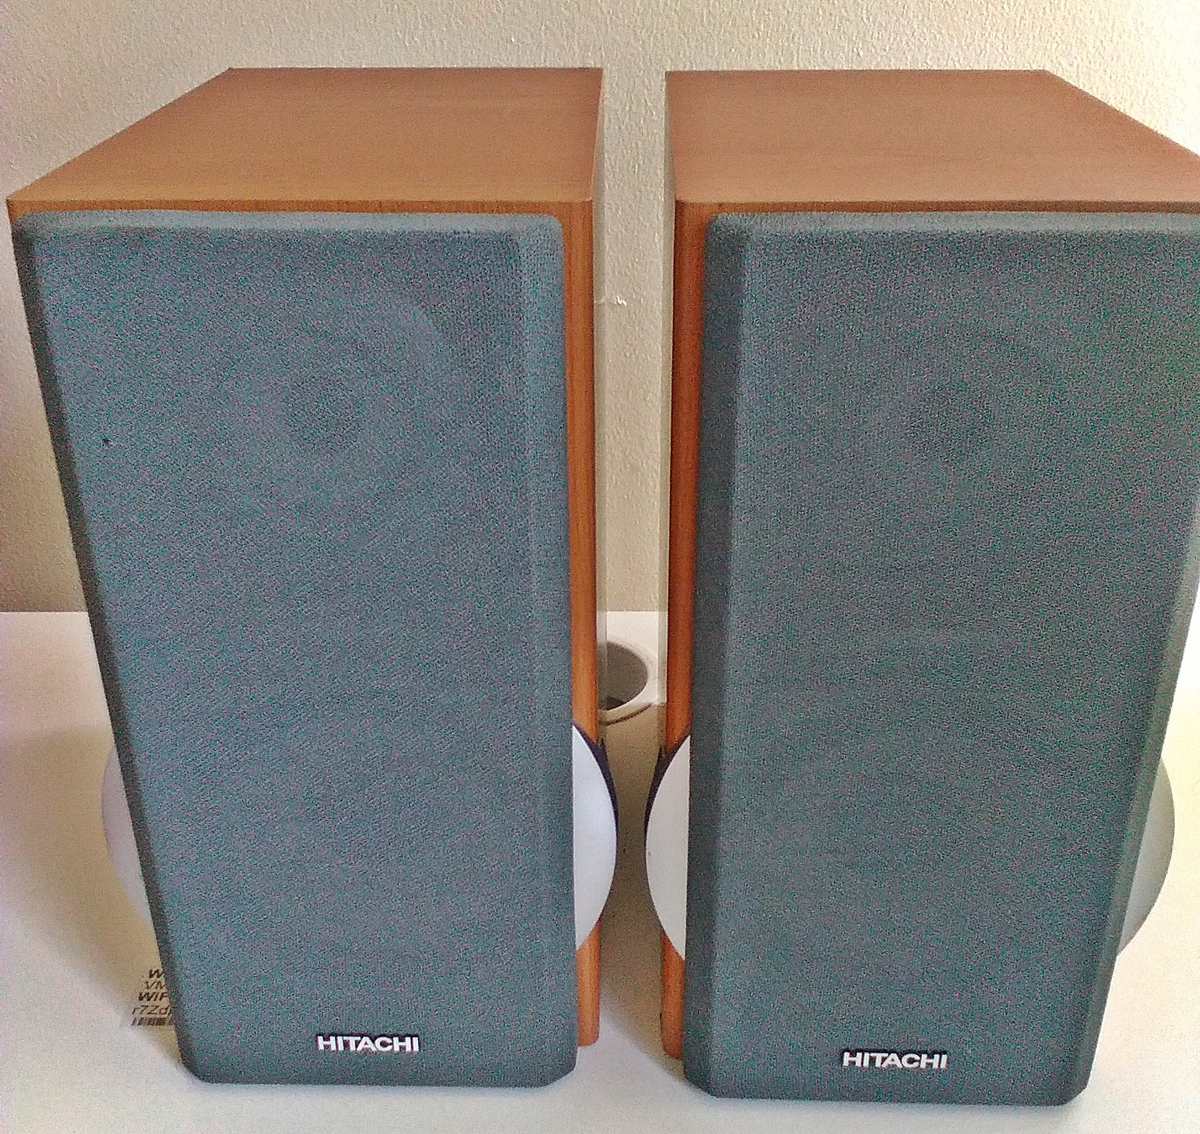 hitachi speakers. hitachi speakers